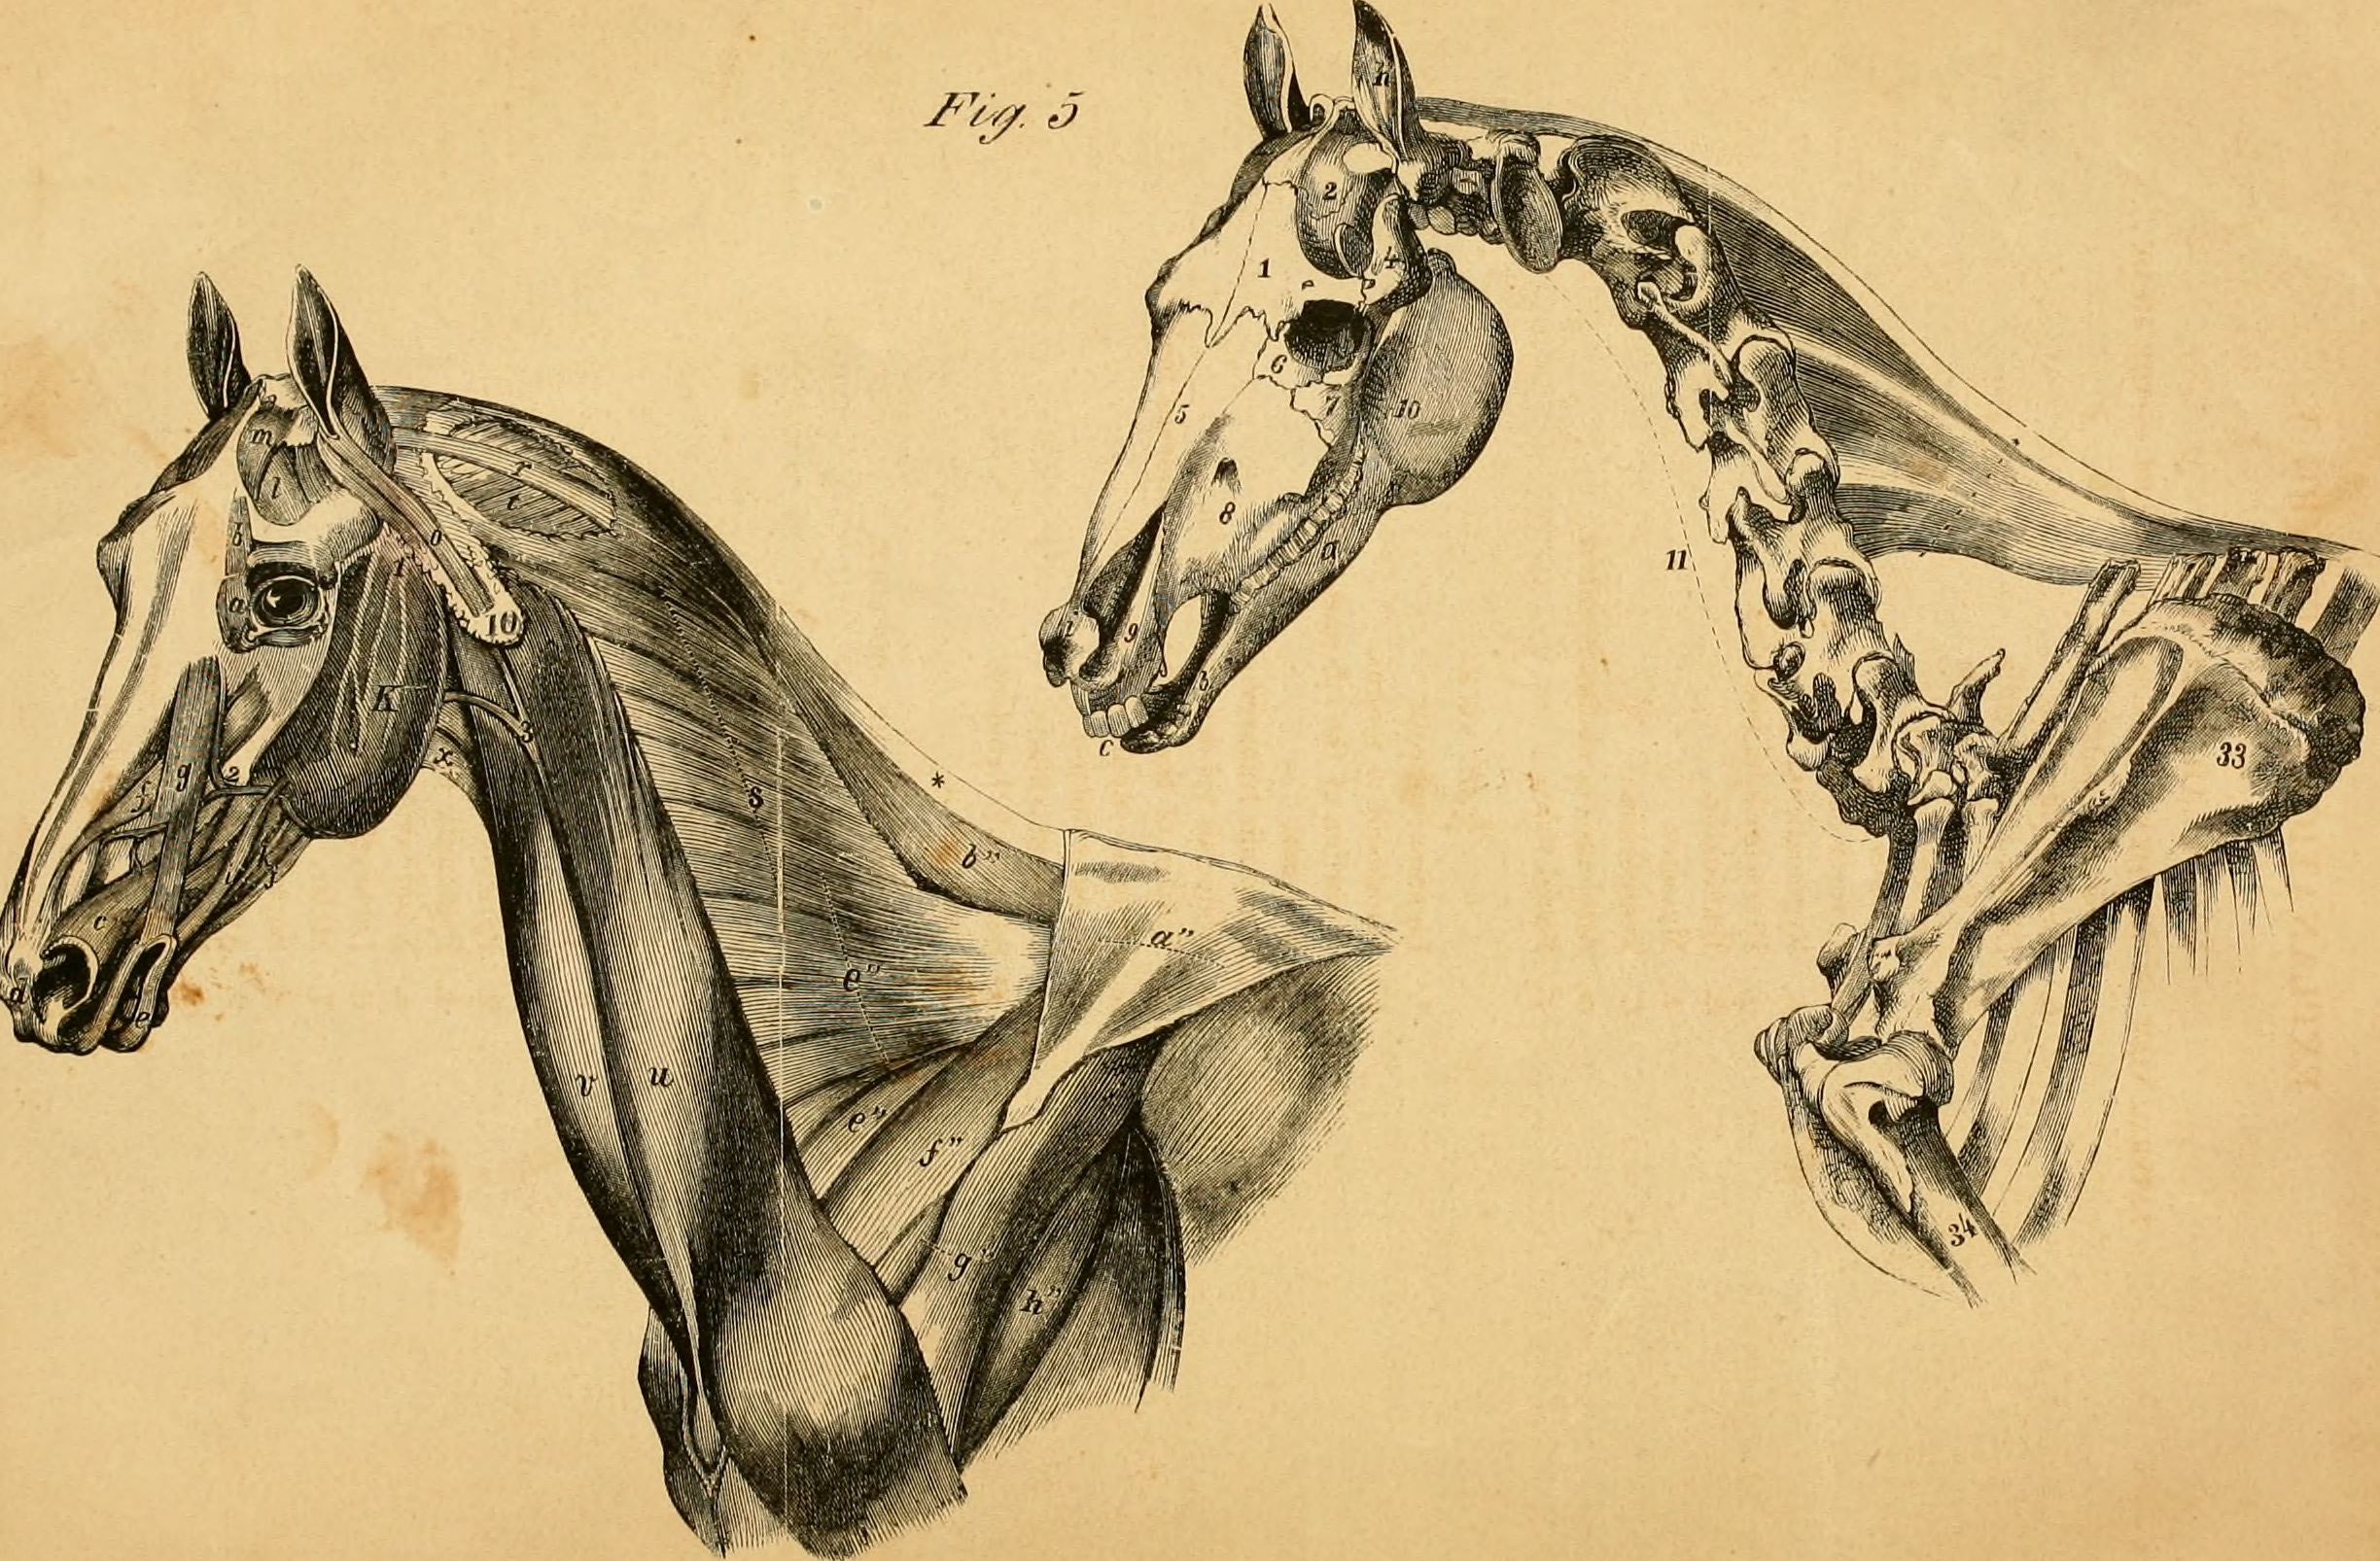 File:The anatomy and physiology of the horse - with anatomical and ...